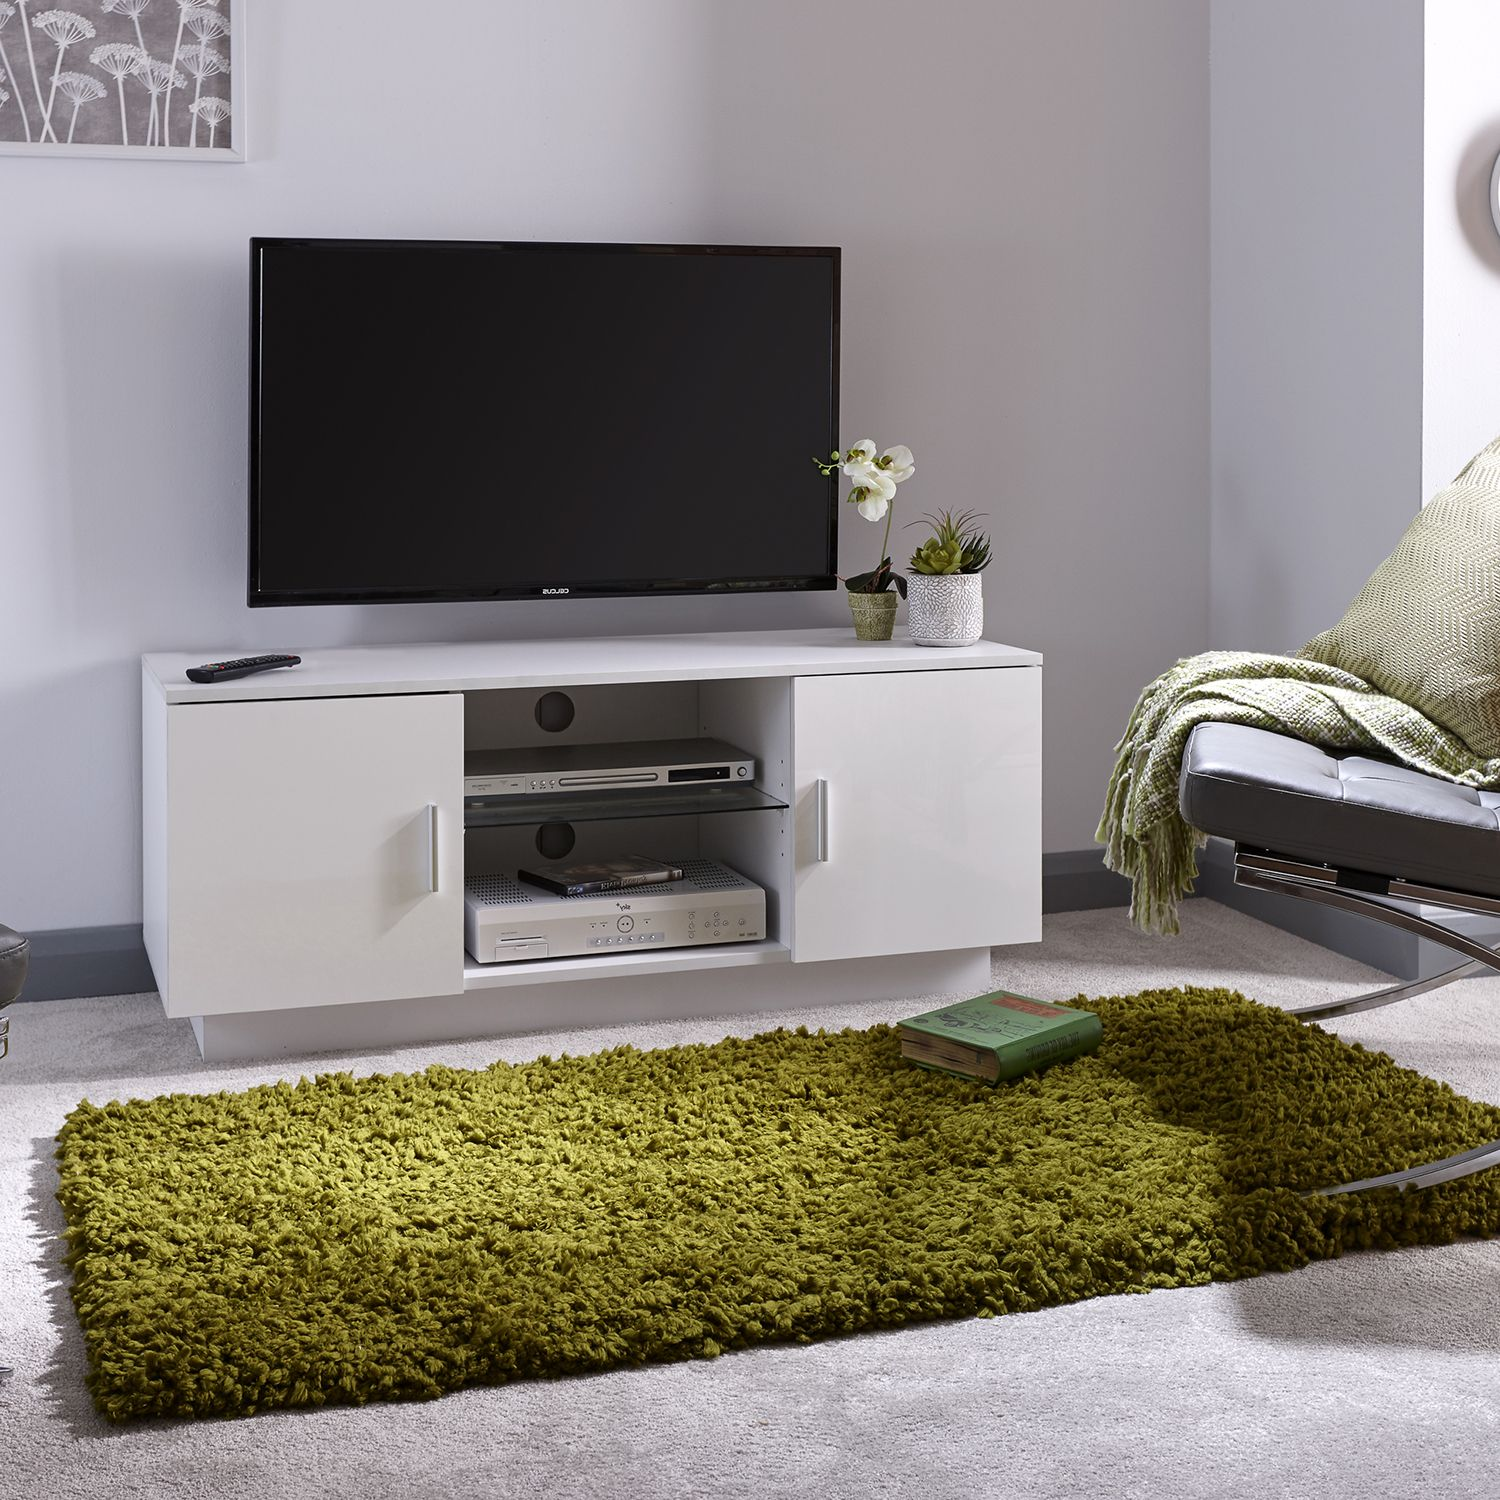 Tv Units Units Tv Tv Units Ikea Tv Units Ikea Australia Tv Units Ikea Ireland Coffee Table White Tv Stand Furniture Coffee Table [ 1500 x 1500 Pixel ]